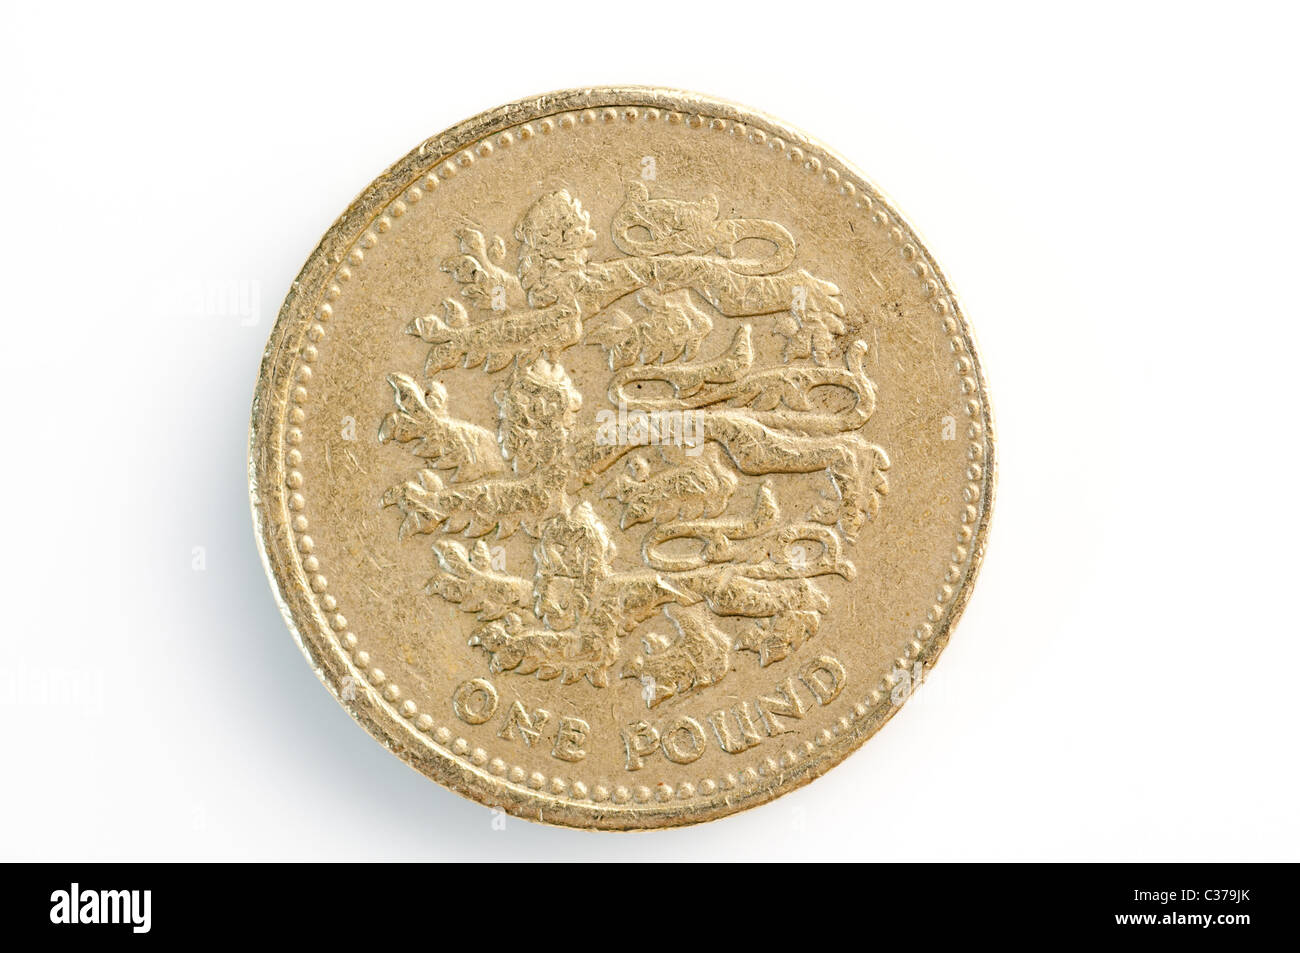 Fake Great British sterling one pound coins - Stock Image